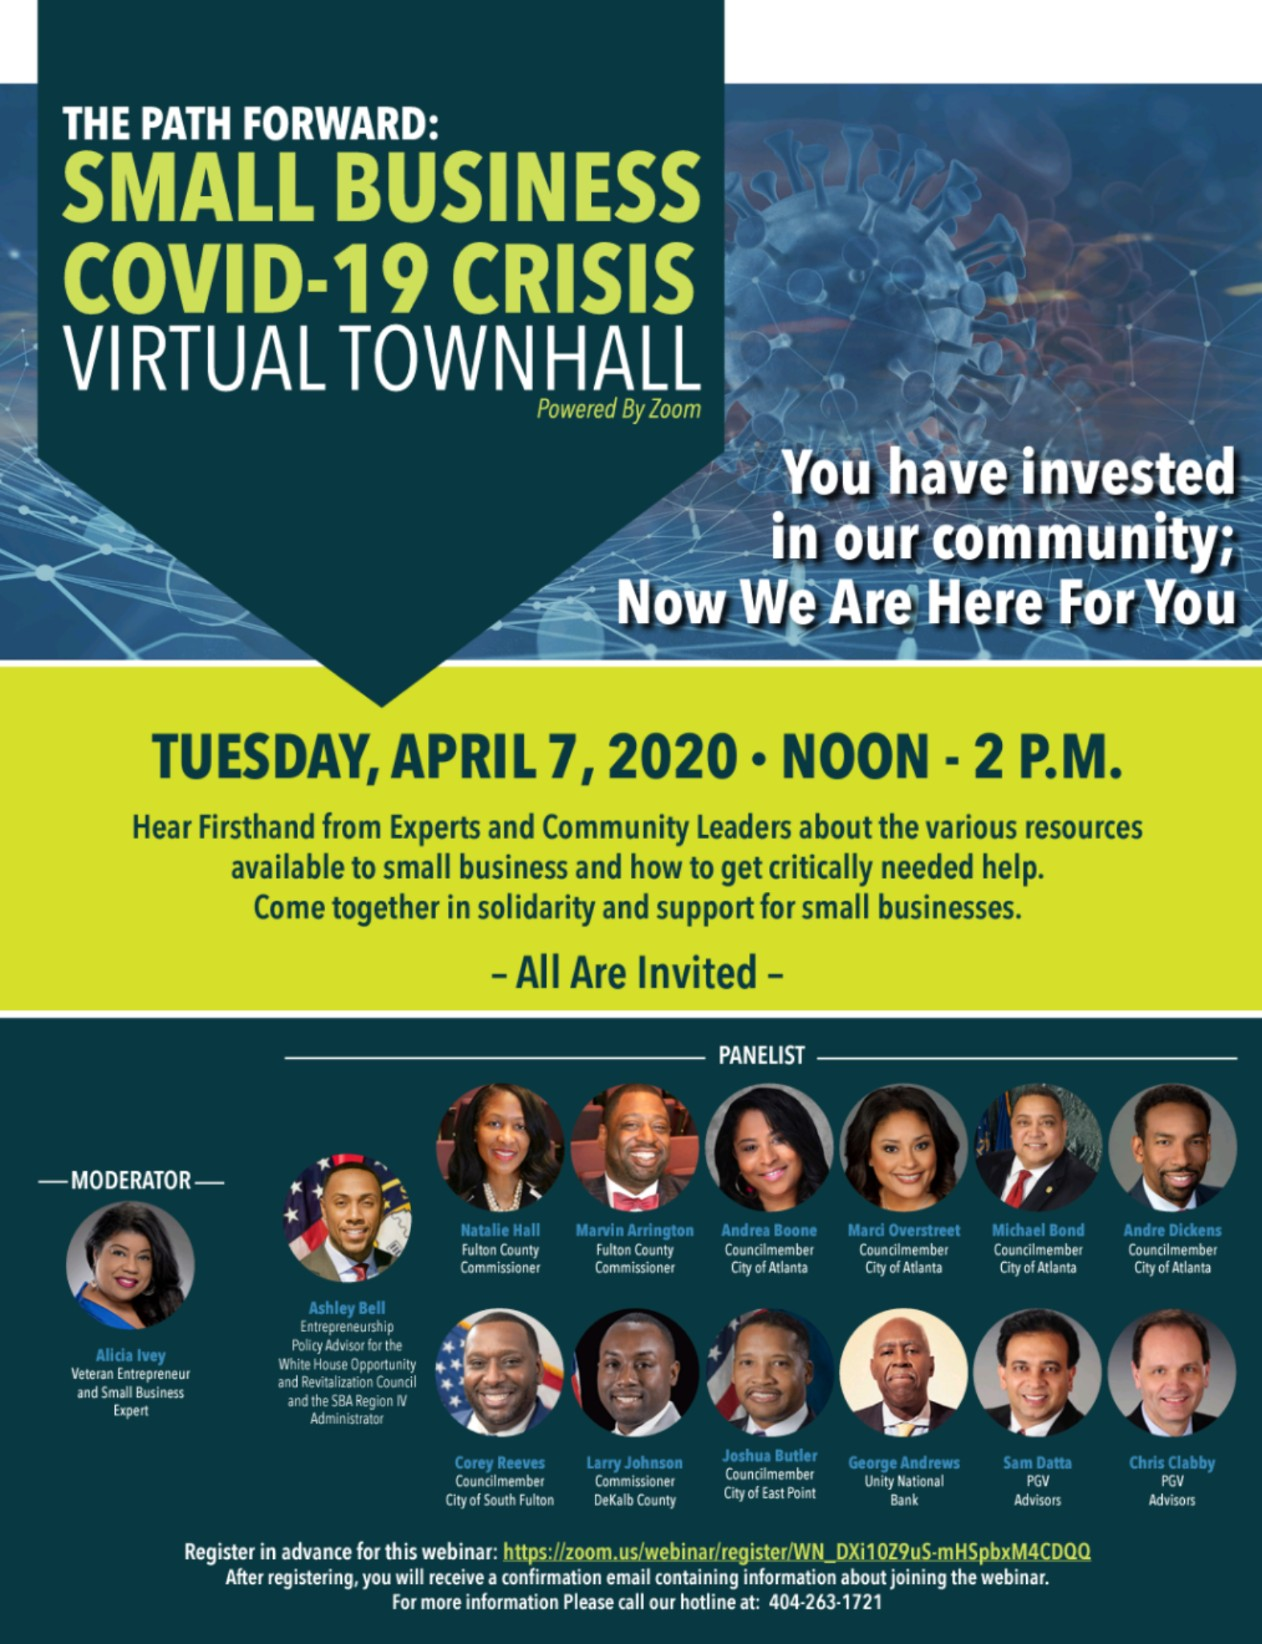 small business virtual townhall